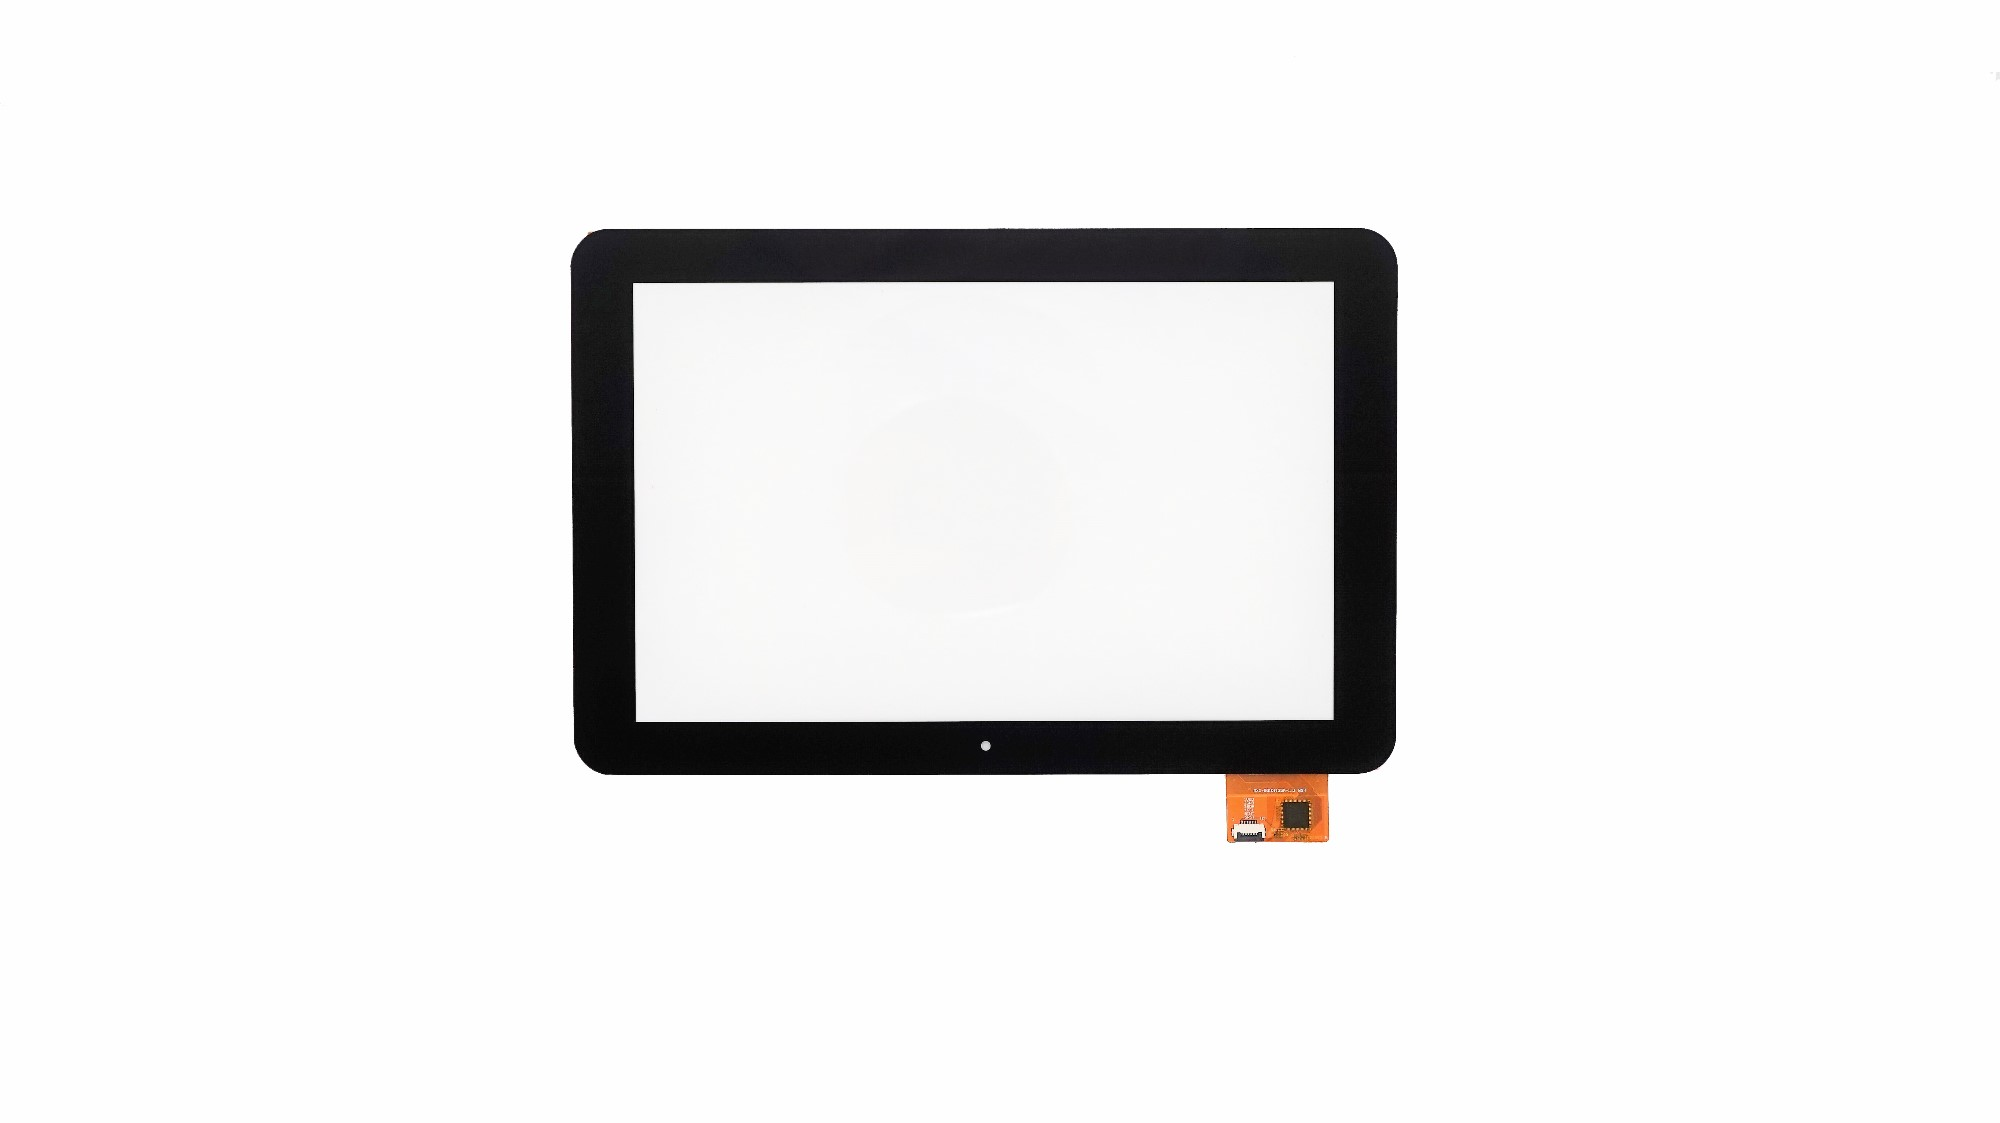 Custom China Anti Glare 10.1 inch Touch Screen 1280x800 PCAP, Anti Glare 10.1 inch Touch Screen 1280x800 PCAP Factory, Anti Glare 10.1 inch Touch Screen 1280x800 PCAP OEM